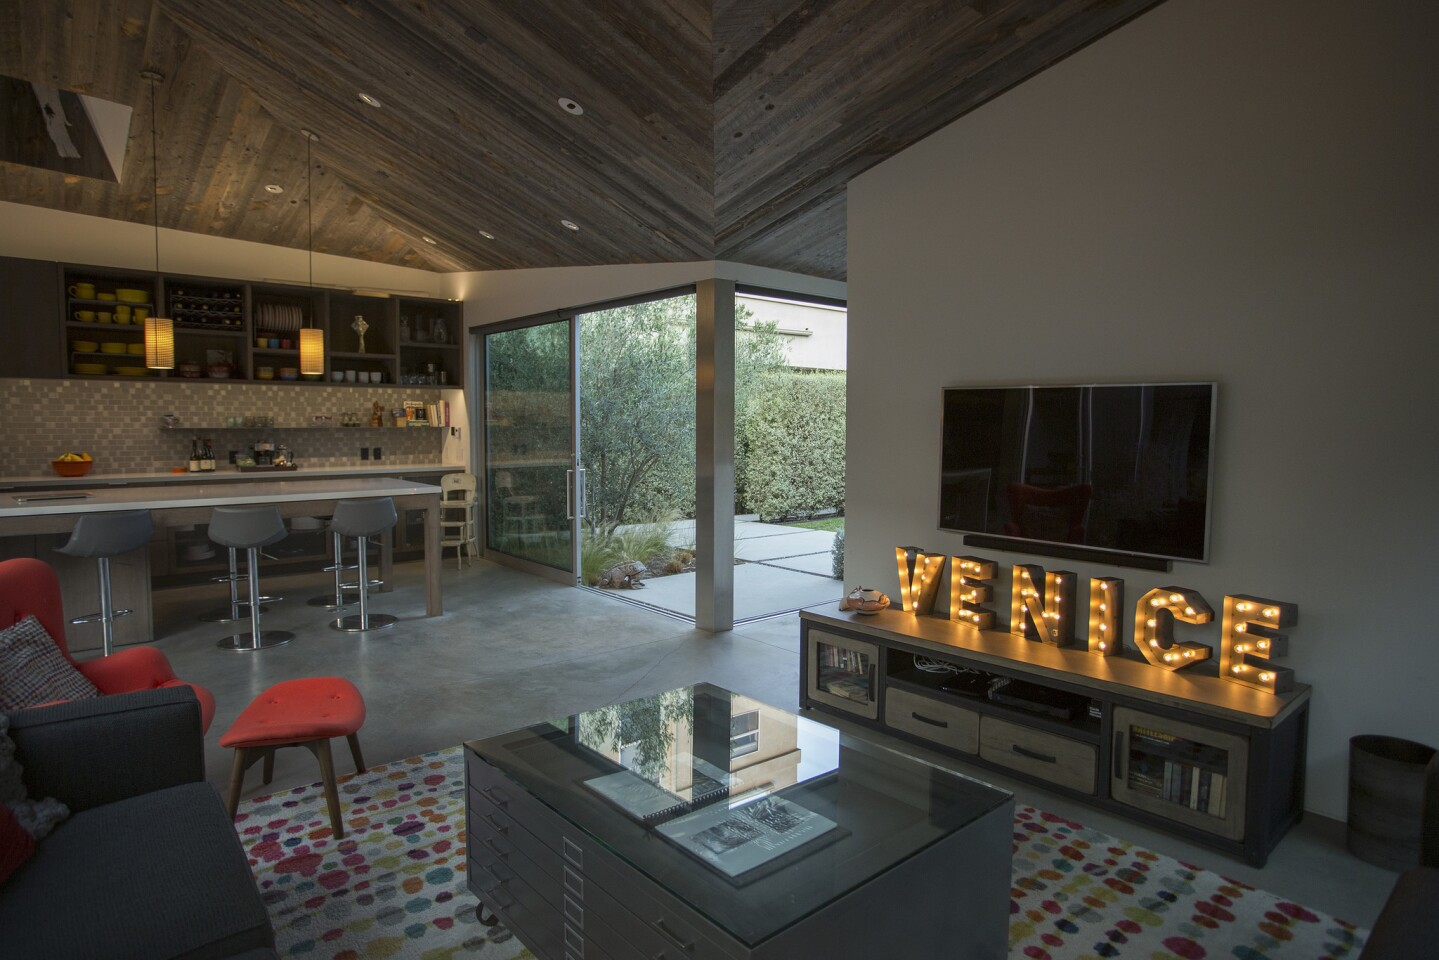 A view from the living area into the dining and kitchen areas and the front yard of the duplex.